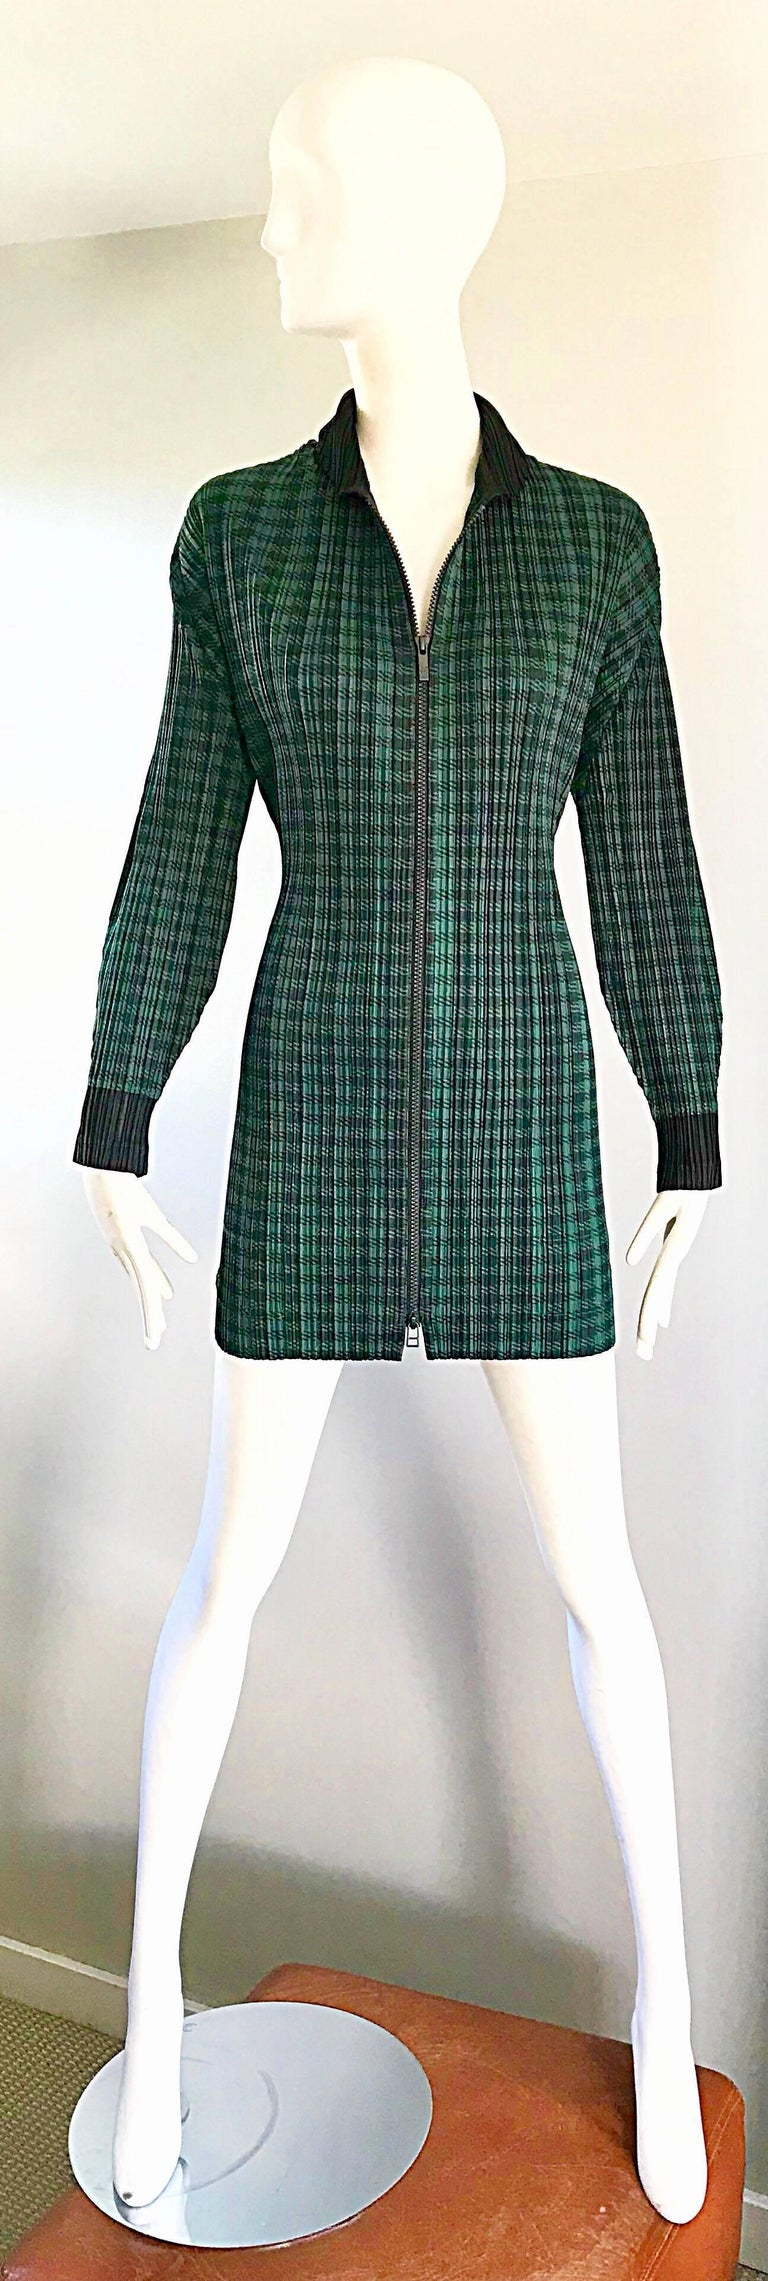 A,azomg 1990s ISSEY MIYAKE PLEATS PLEASE larger size green and black checkered jacket OR mini dress! Features signature micro pleats that allow stretch to fit. Black zipper up the front. Can easily be worn as either a jacket or a dress. Great belted